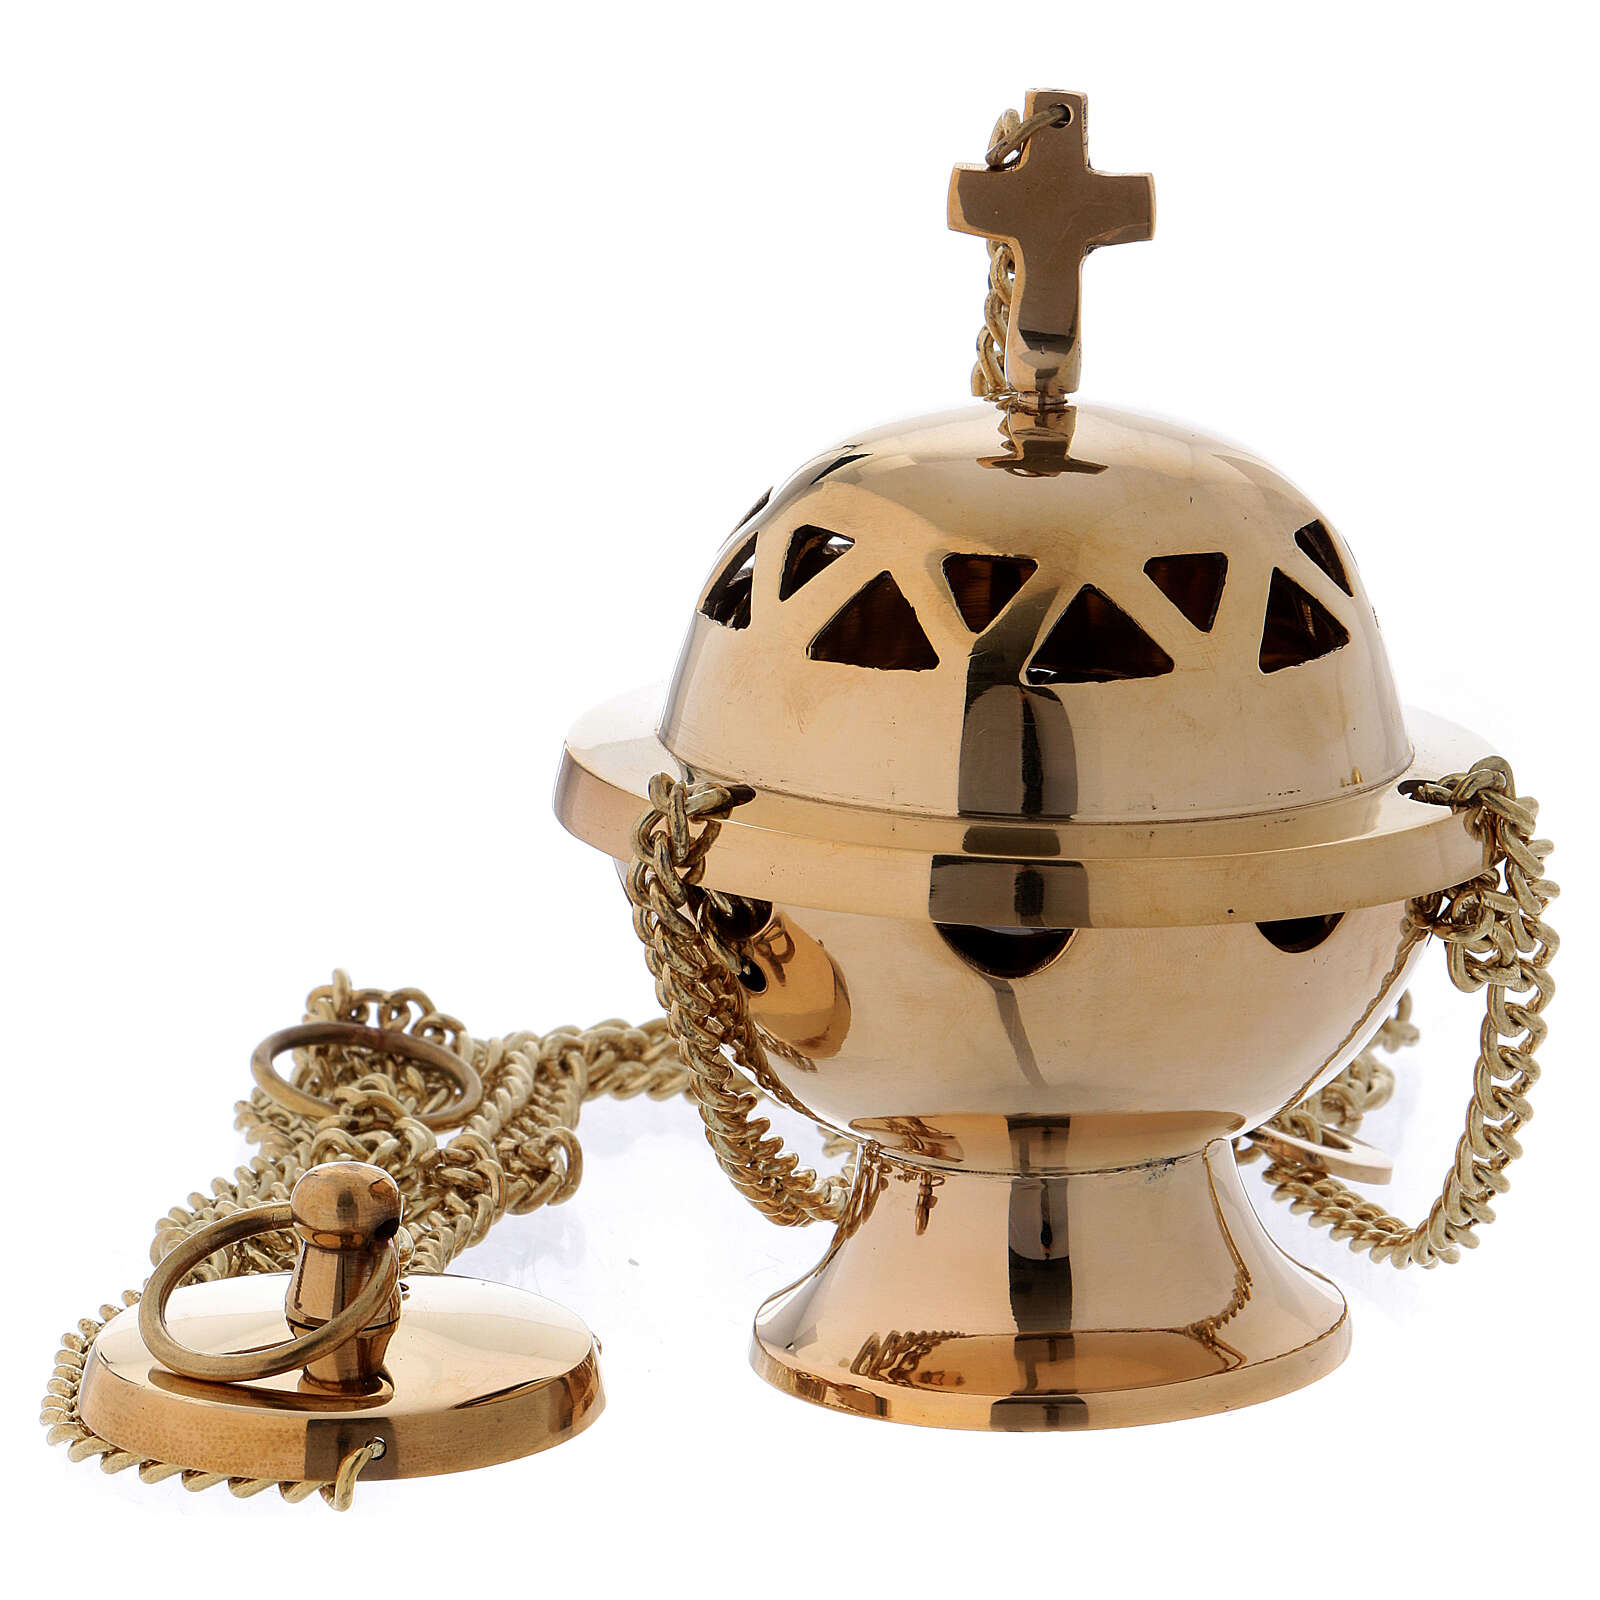 Thurible with triangular holes gold plated brass h 4 1/4 in 3